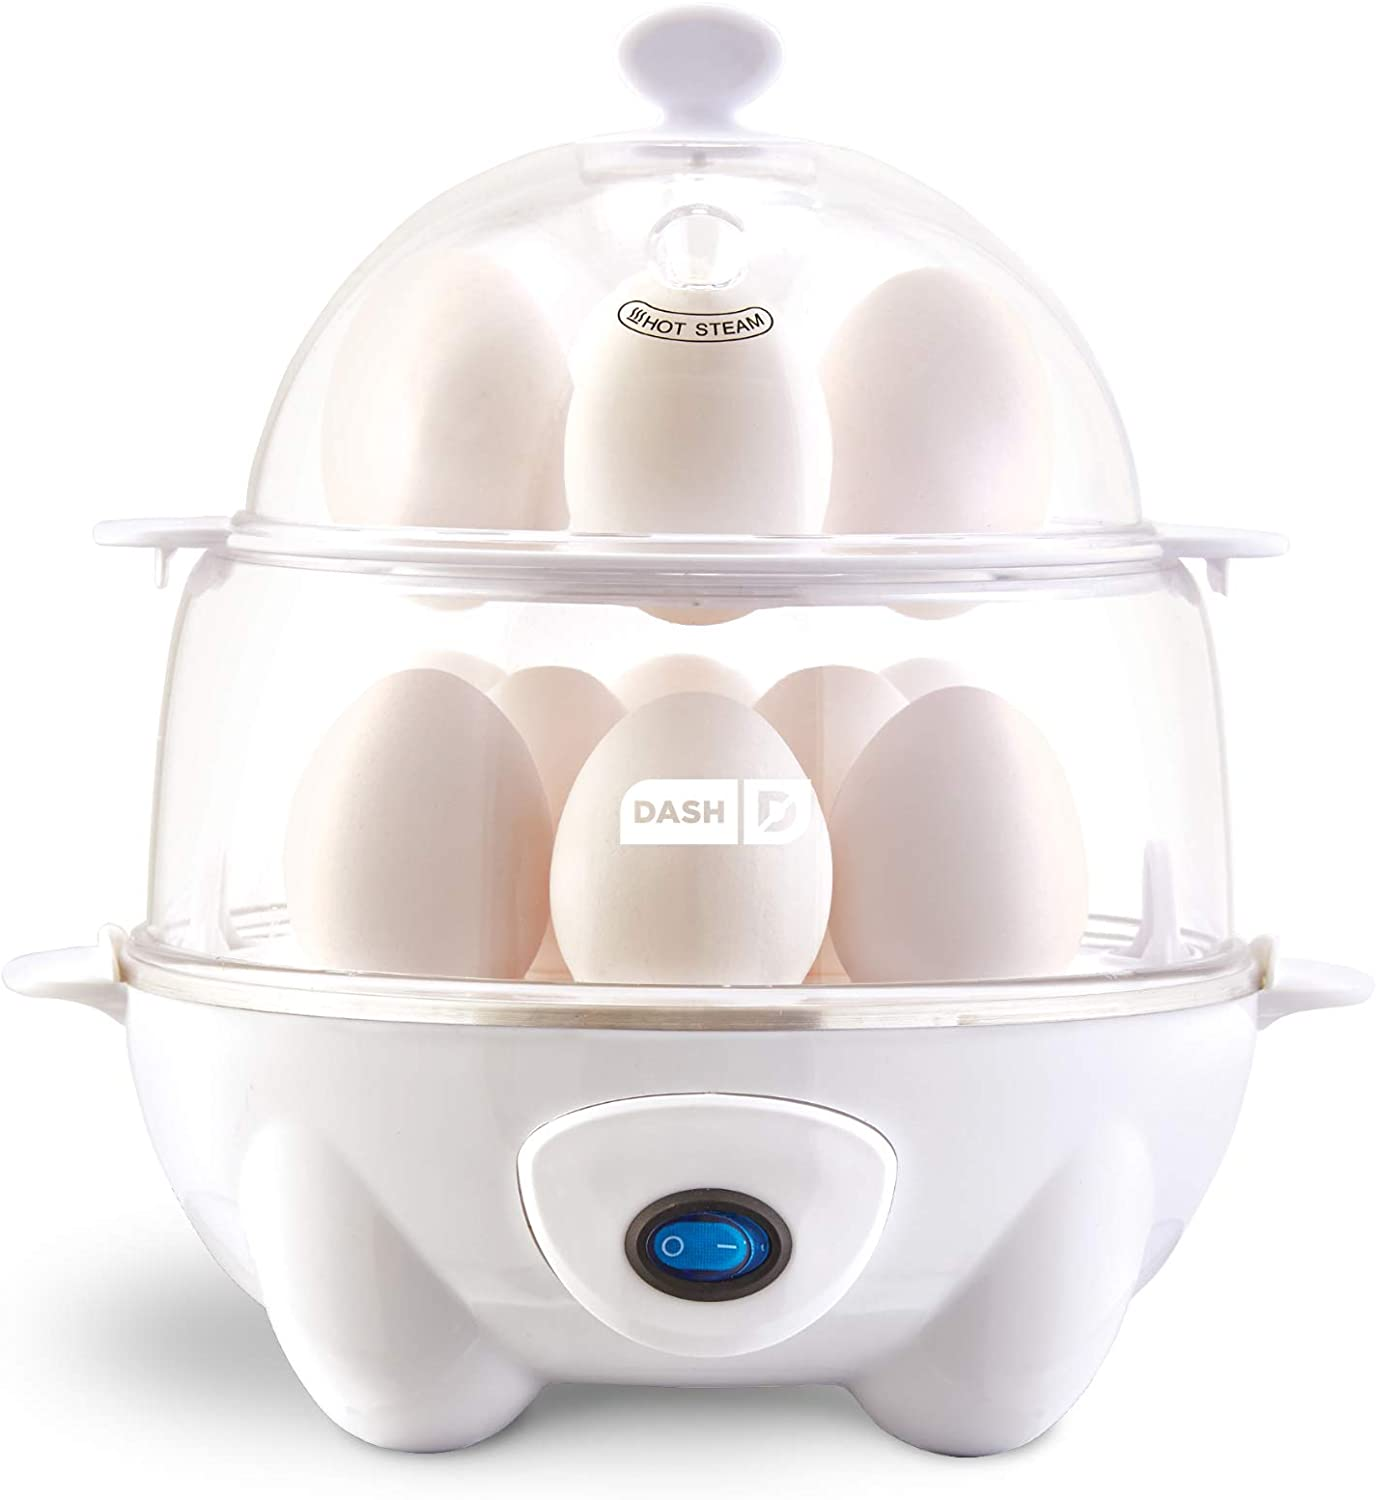 Dash Deluxe Rapid Egg Cooker: Electric, 12 Capacity for Hard Boiled, Poached, Scrambled, Omelets, Steamed Vegetables, Seafood, Dumplings & More, 1, White